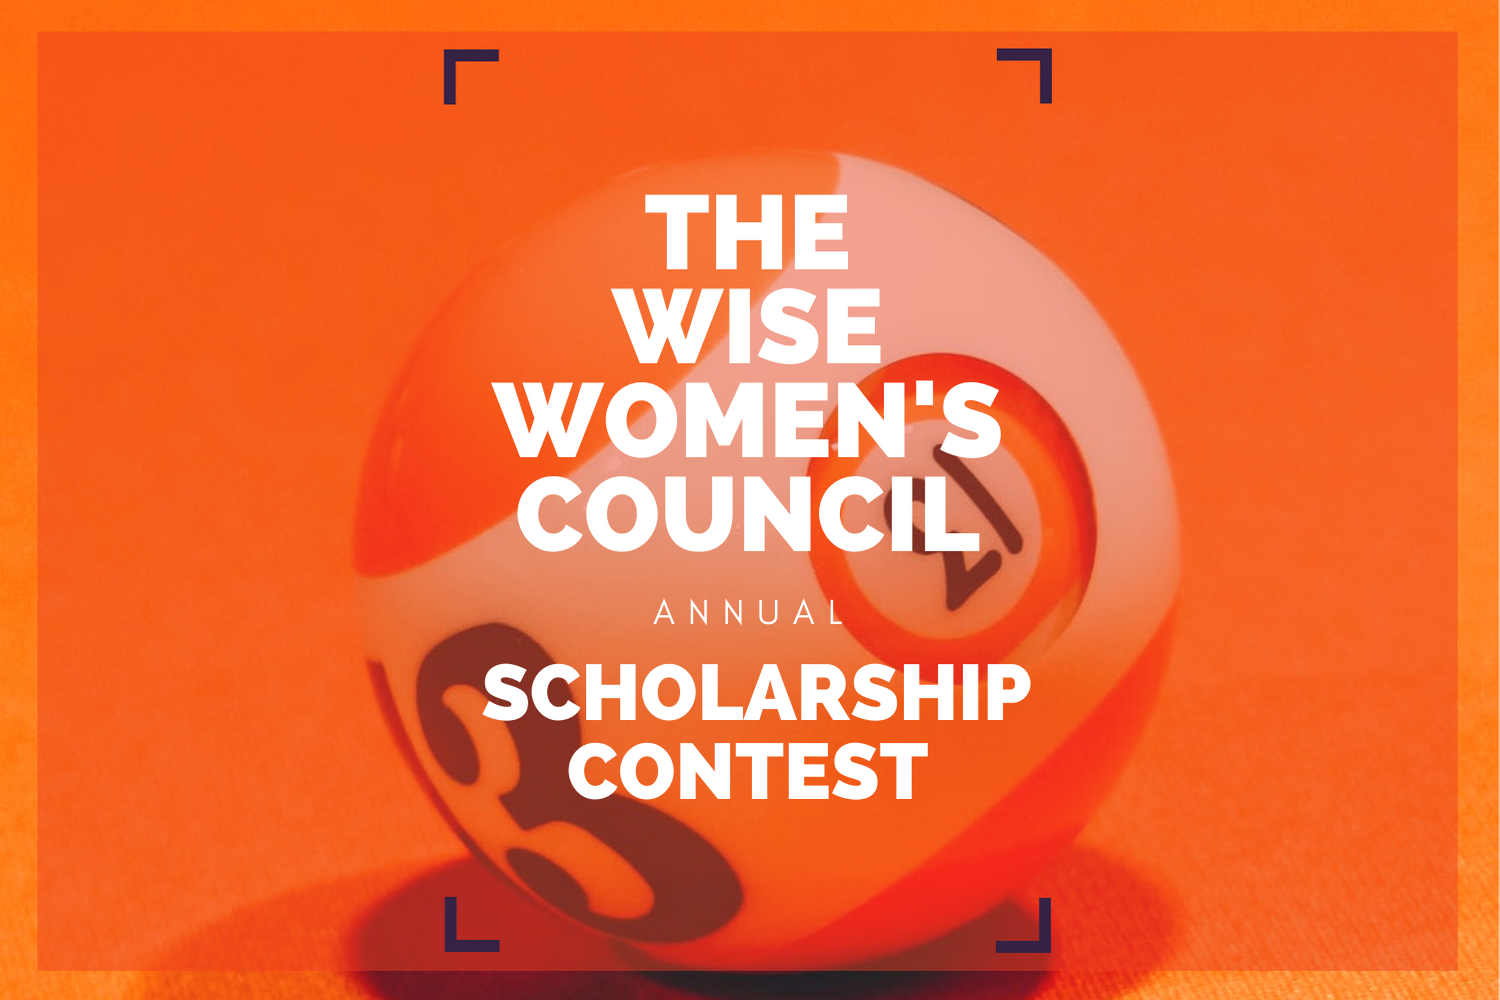 Wise Women's Council 2021 Scholarship Competition